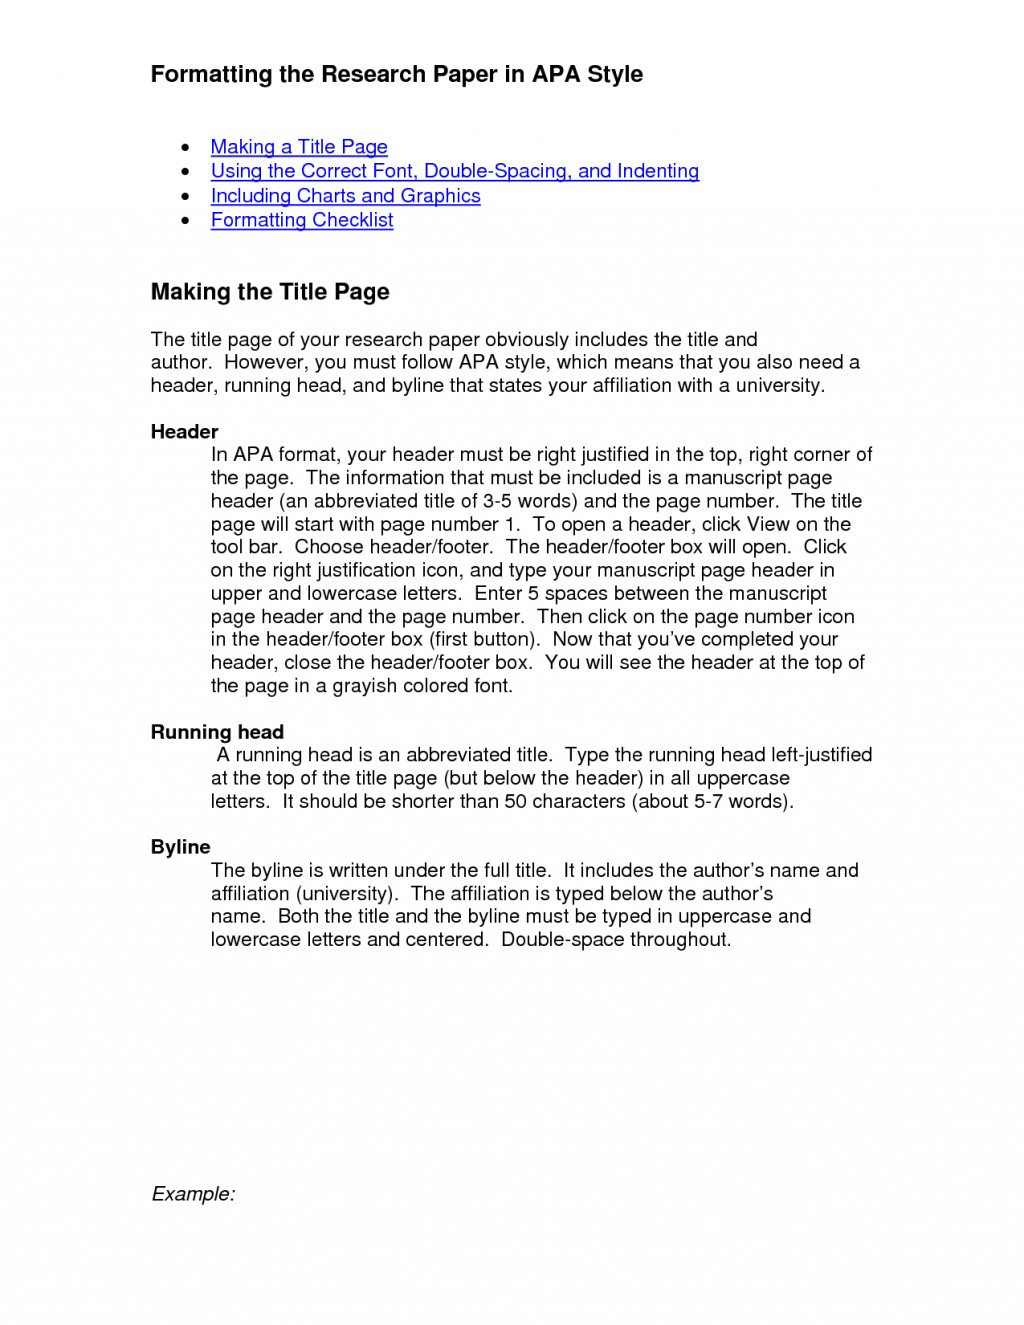 005 Research Paper 2mefq6rl5g How To Make Citations In Unusual A Apa Large